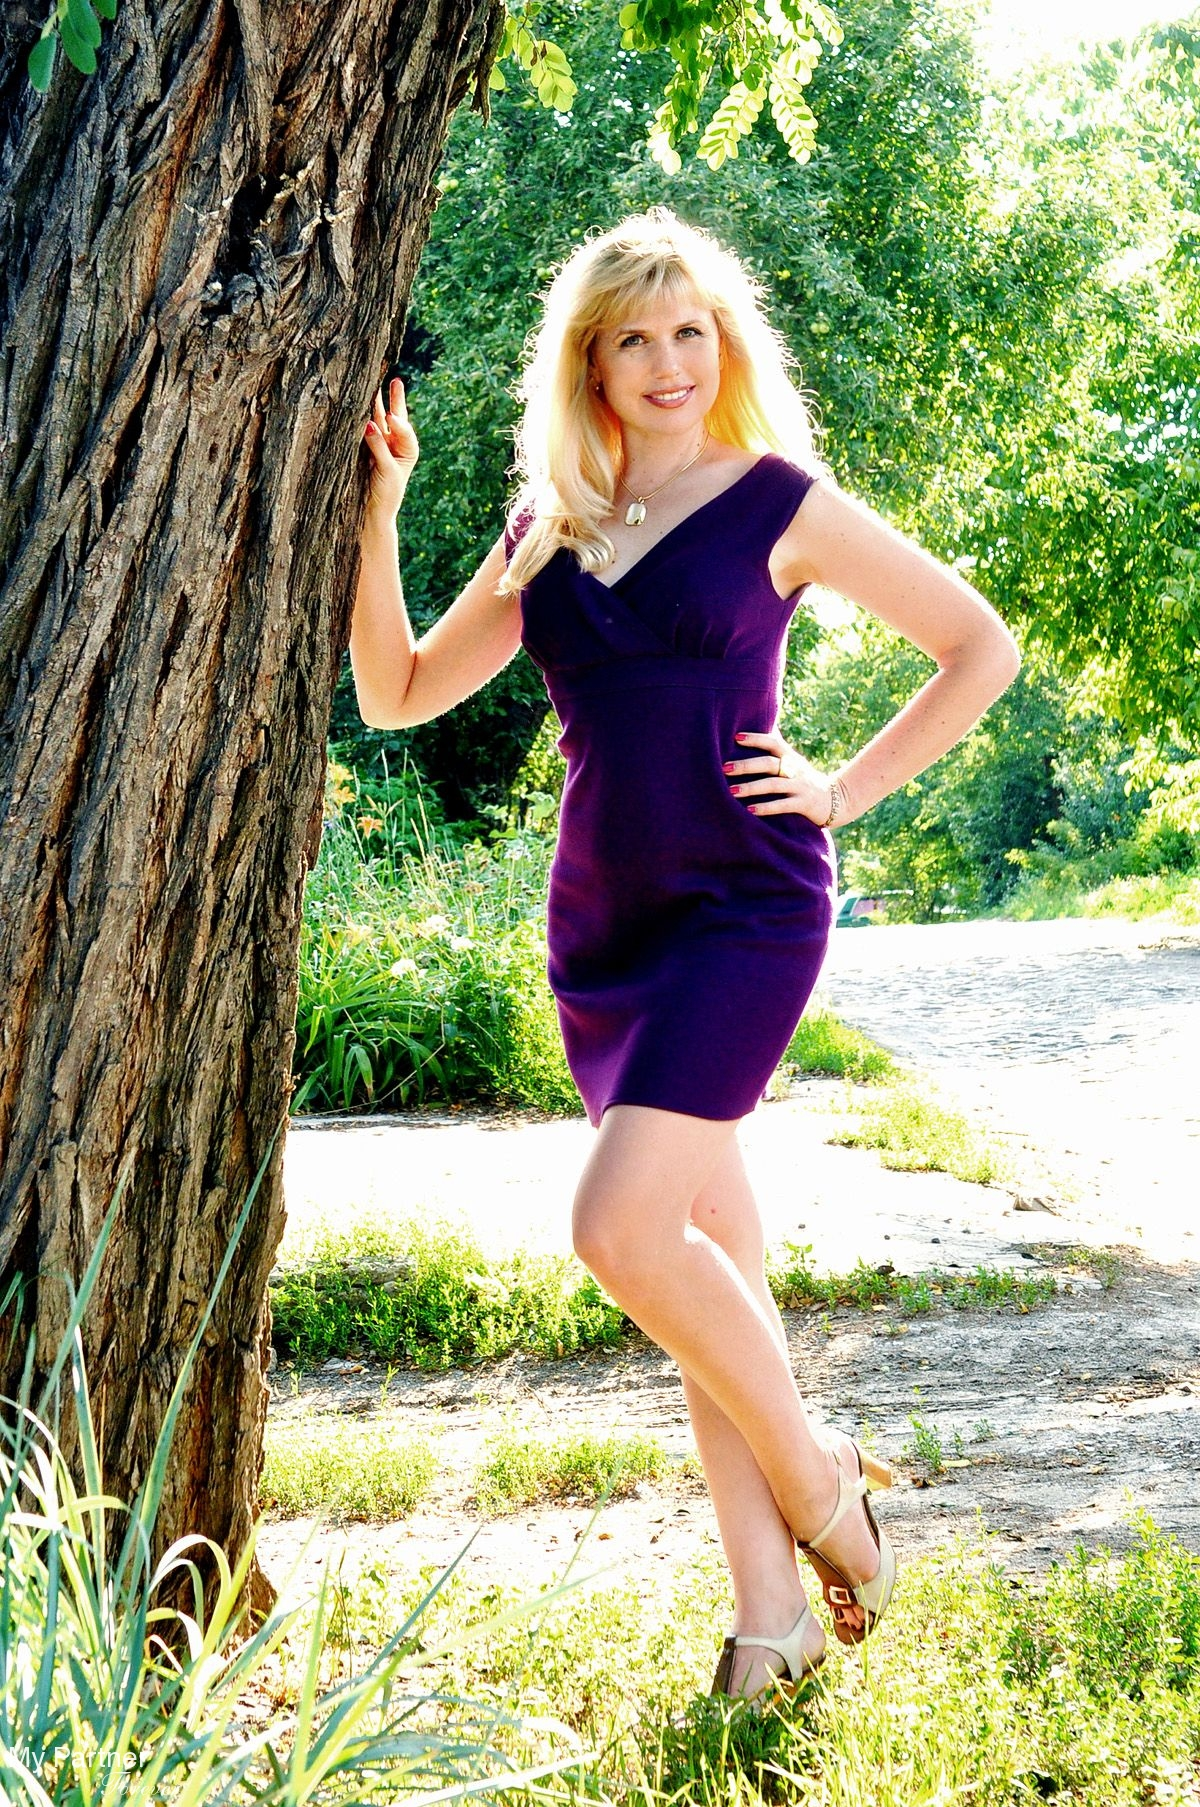 Single Woman from Ukraine - Tatiyana from Kharkov, Ukraine